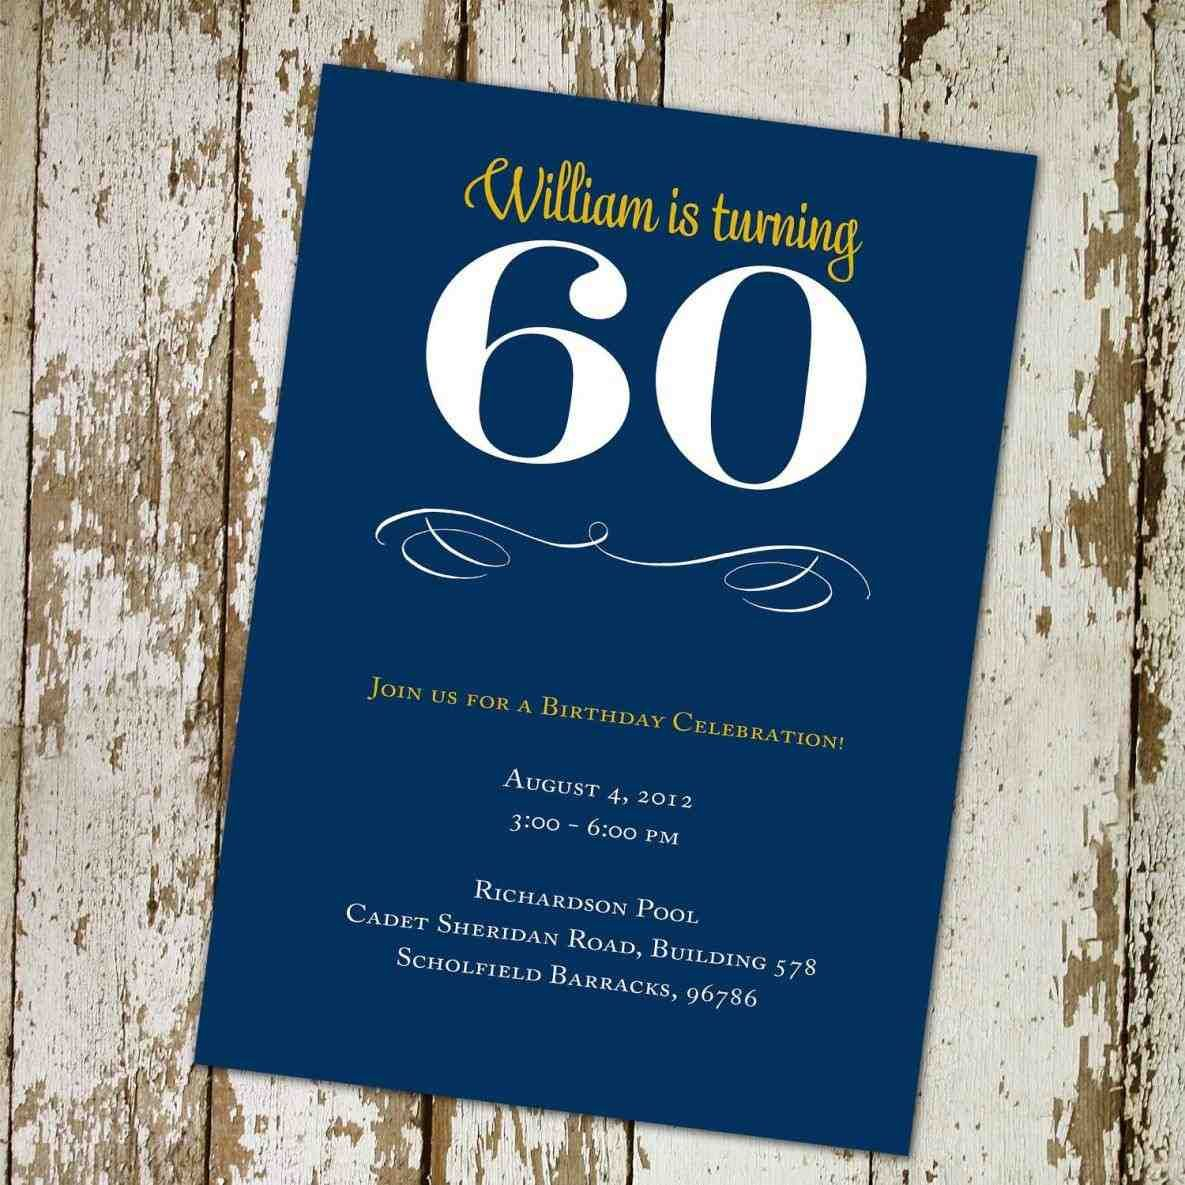 60th birthday surprise party invitation card ; 3362fdec8a7a5cf4812900880a35be9b